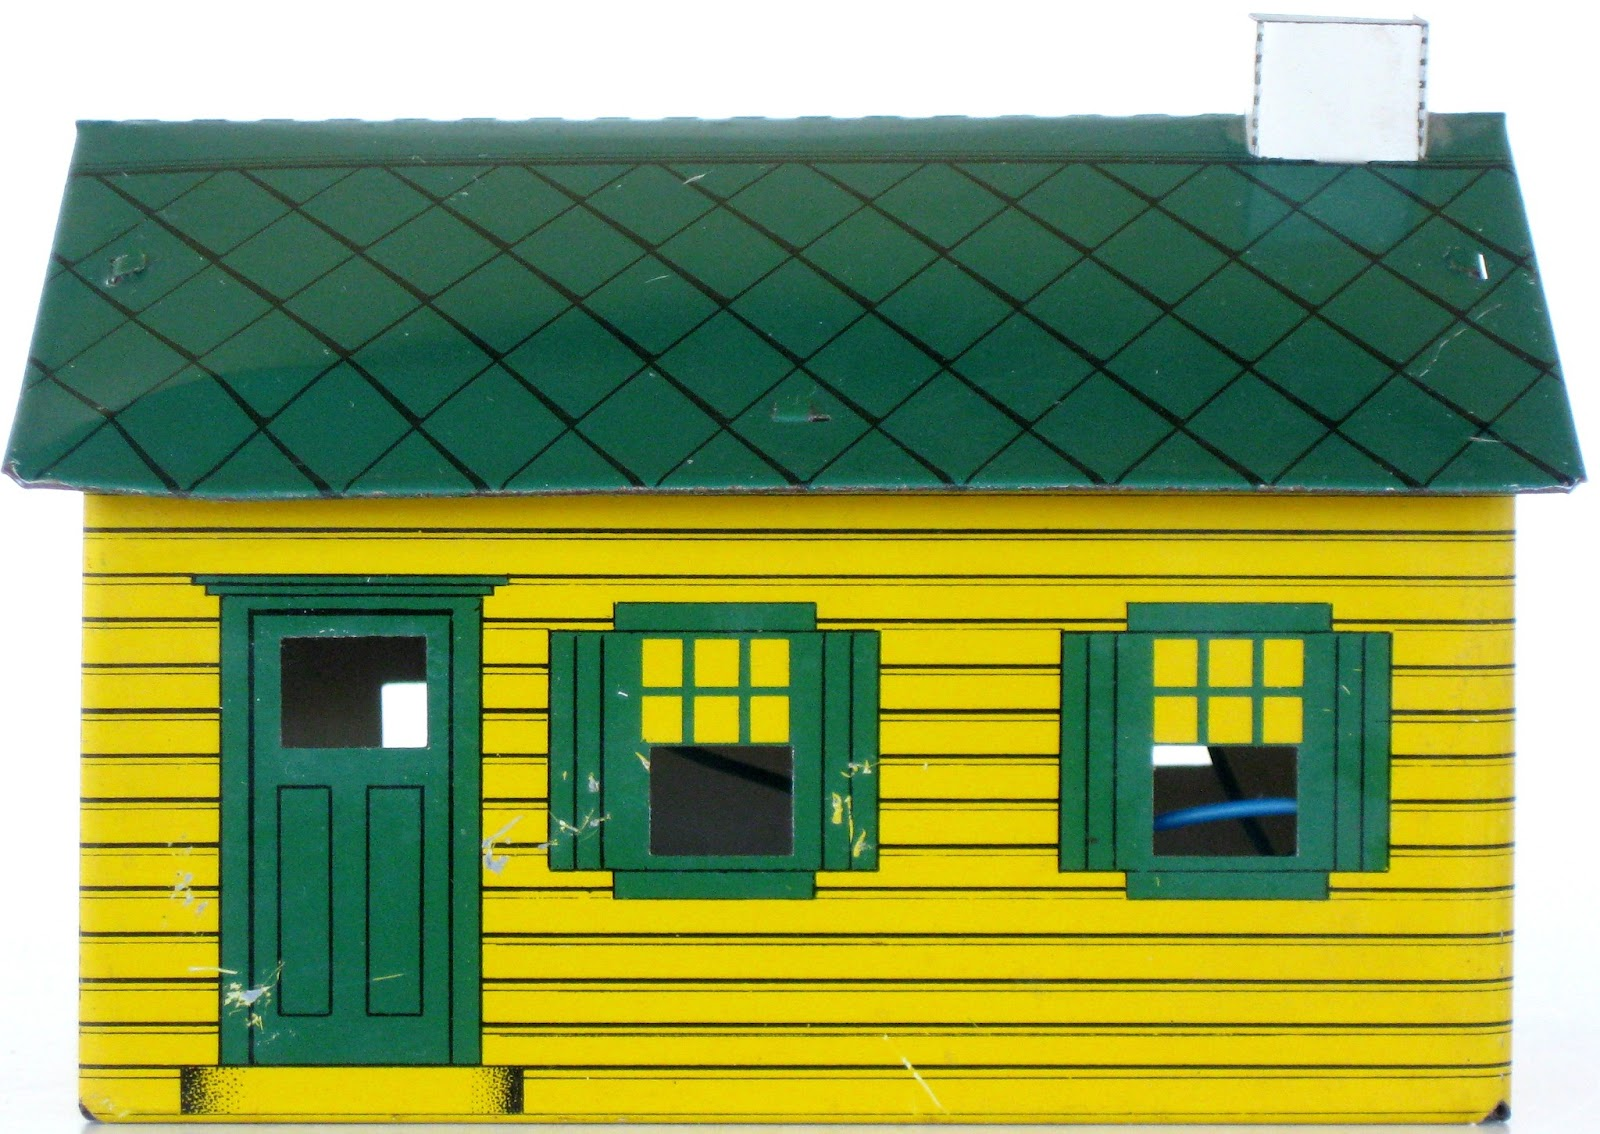 Toys and stuff h h sales model 40 hilltop house - Yellow house with green roof ...